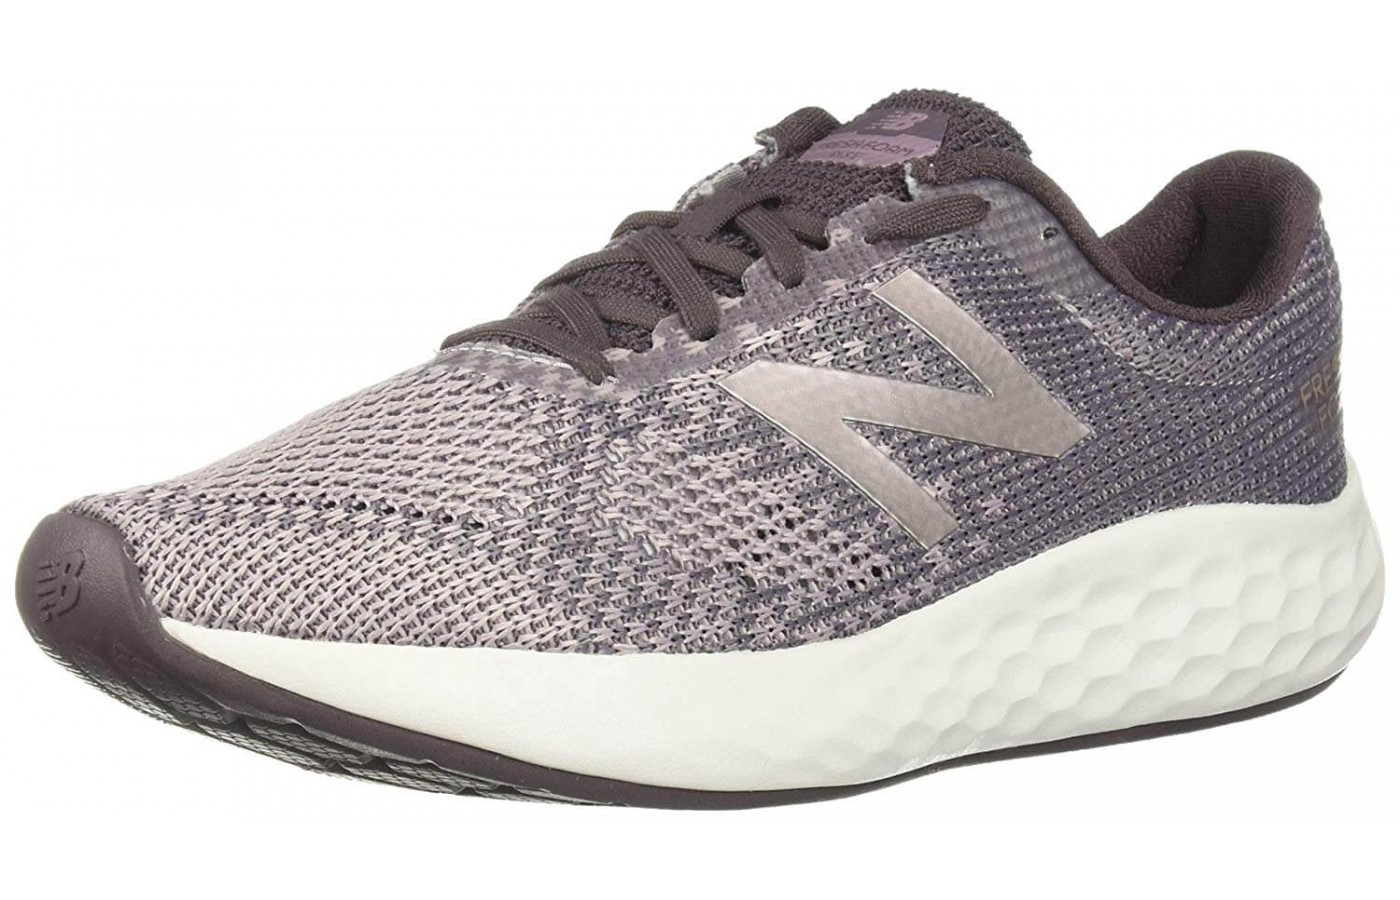 9159b5f96f New Balance Rise V1 Reviewed for Performance in 2019 | WalkJogRun